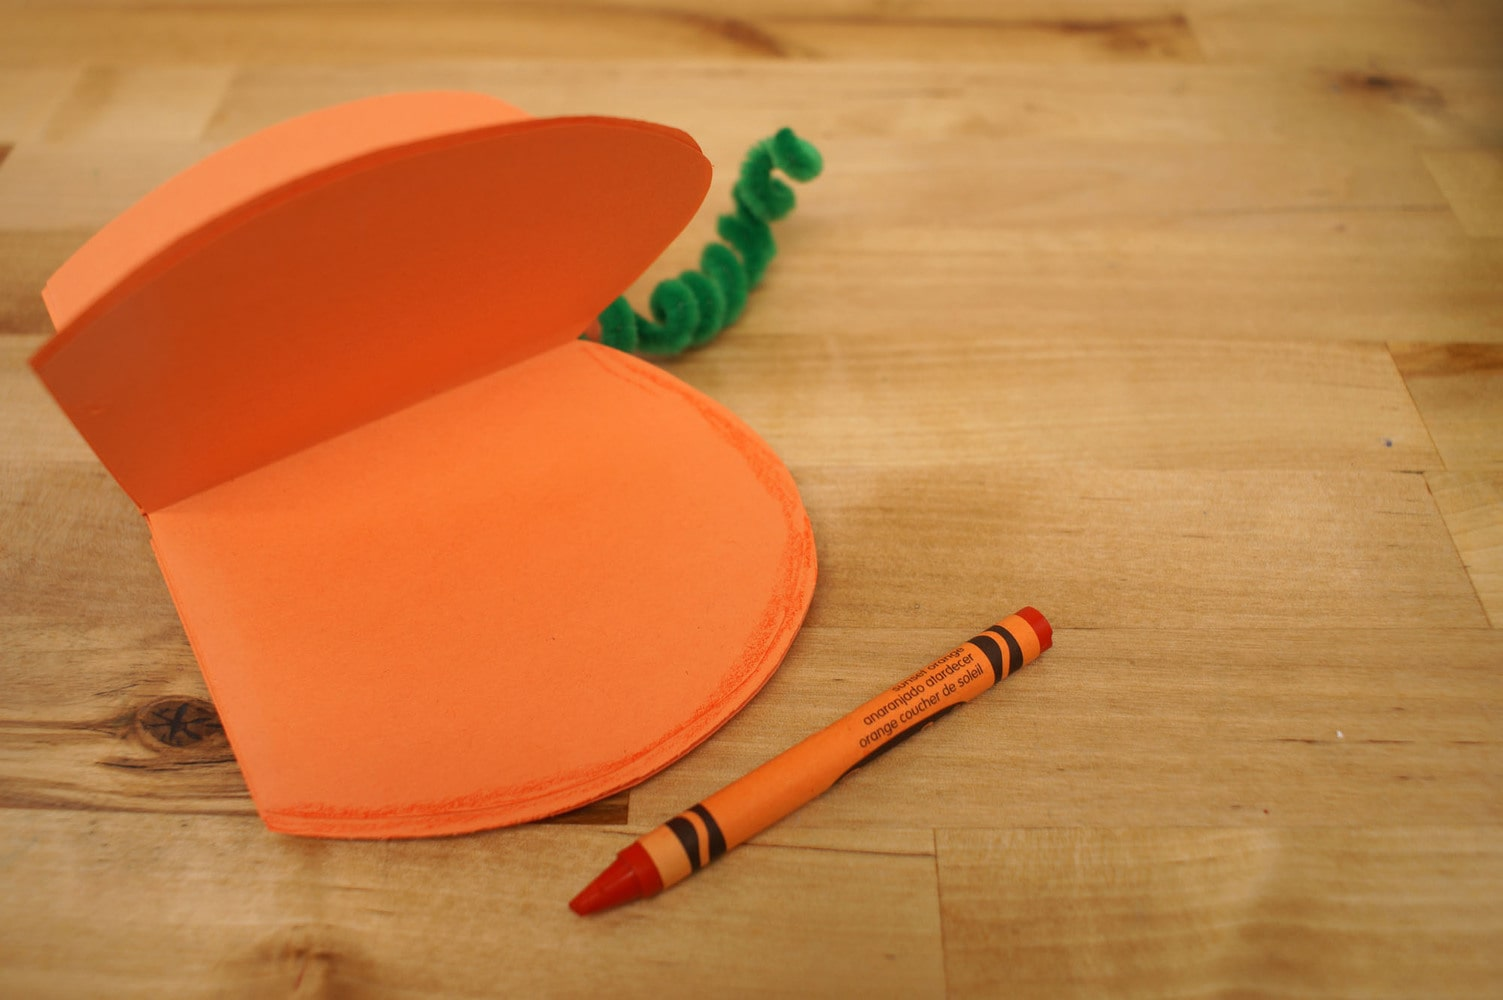 coloring in the pumpkin slices with a crayon